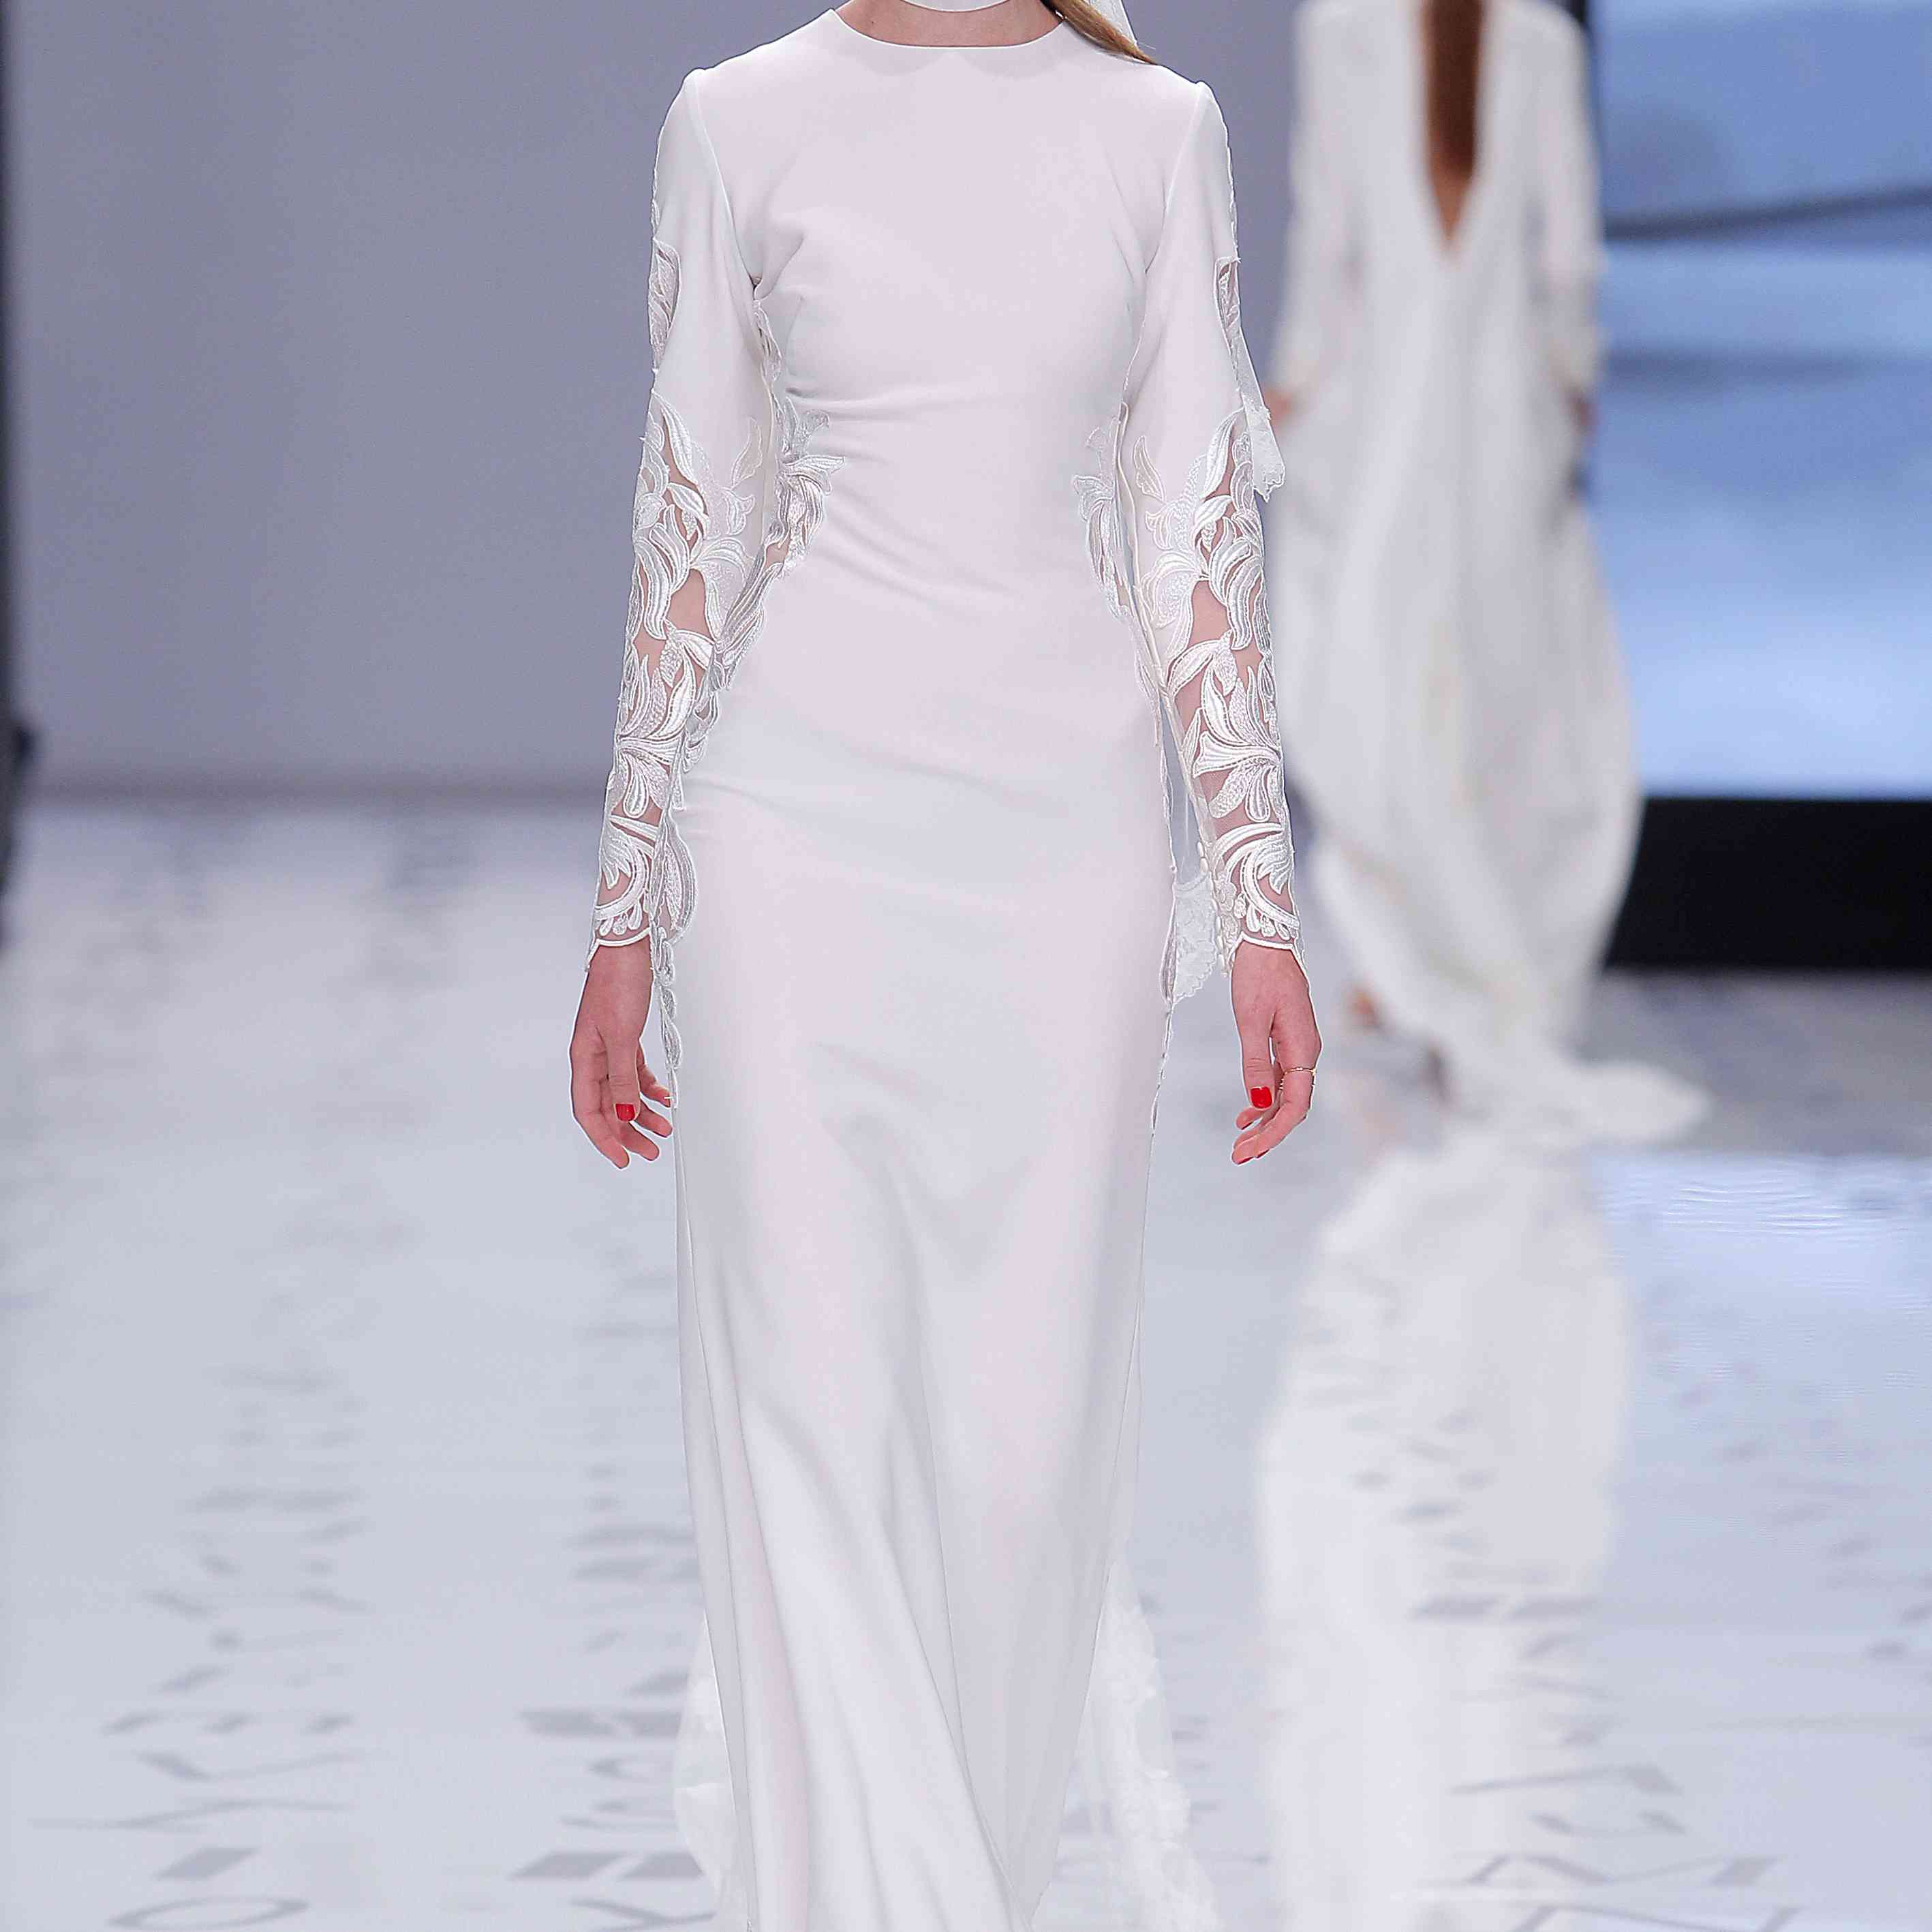 Model in a long-sleeve fitted sheath dress with embroidery along the sleeves and sides.